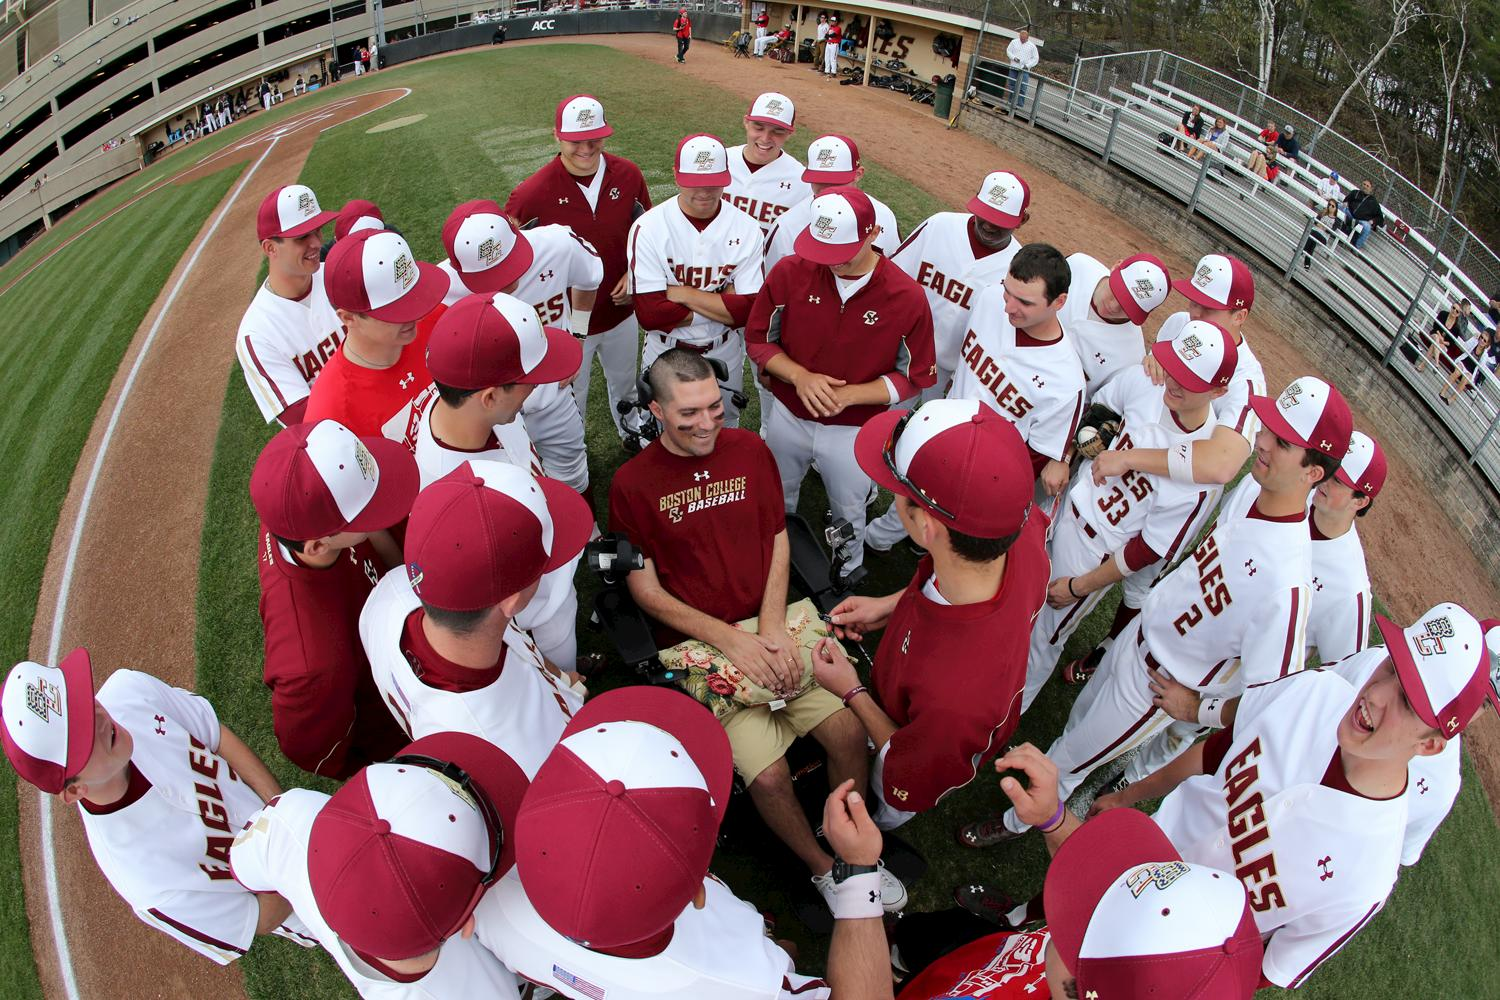 Pete Frates and baseball team